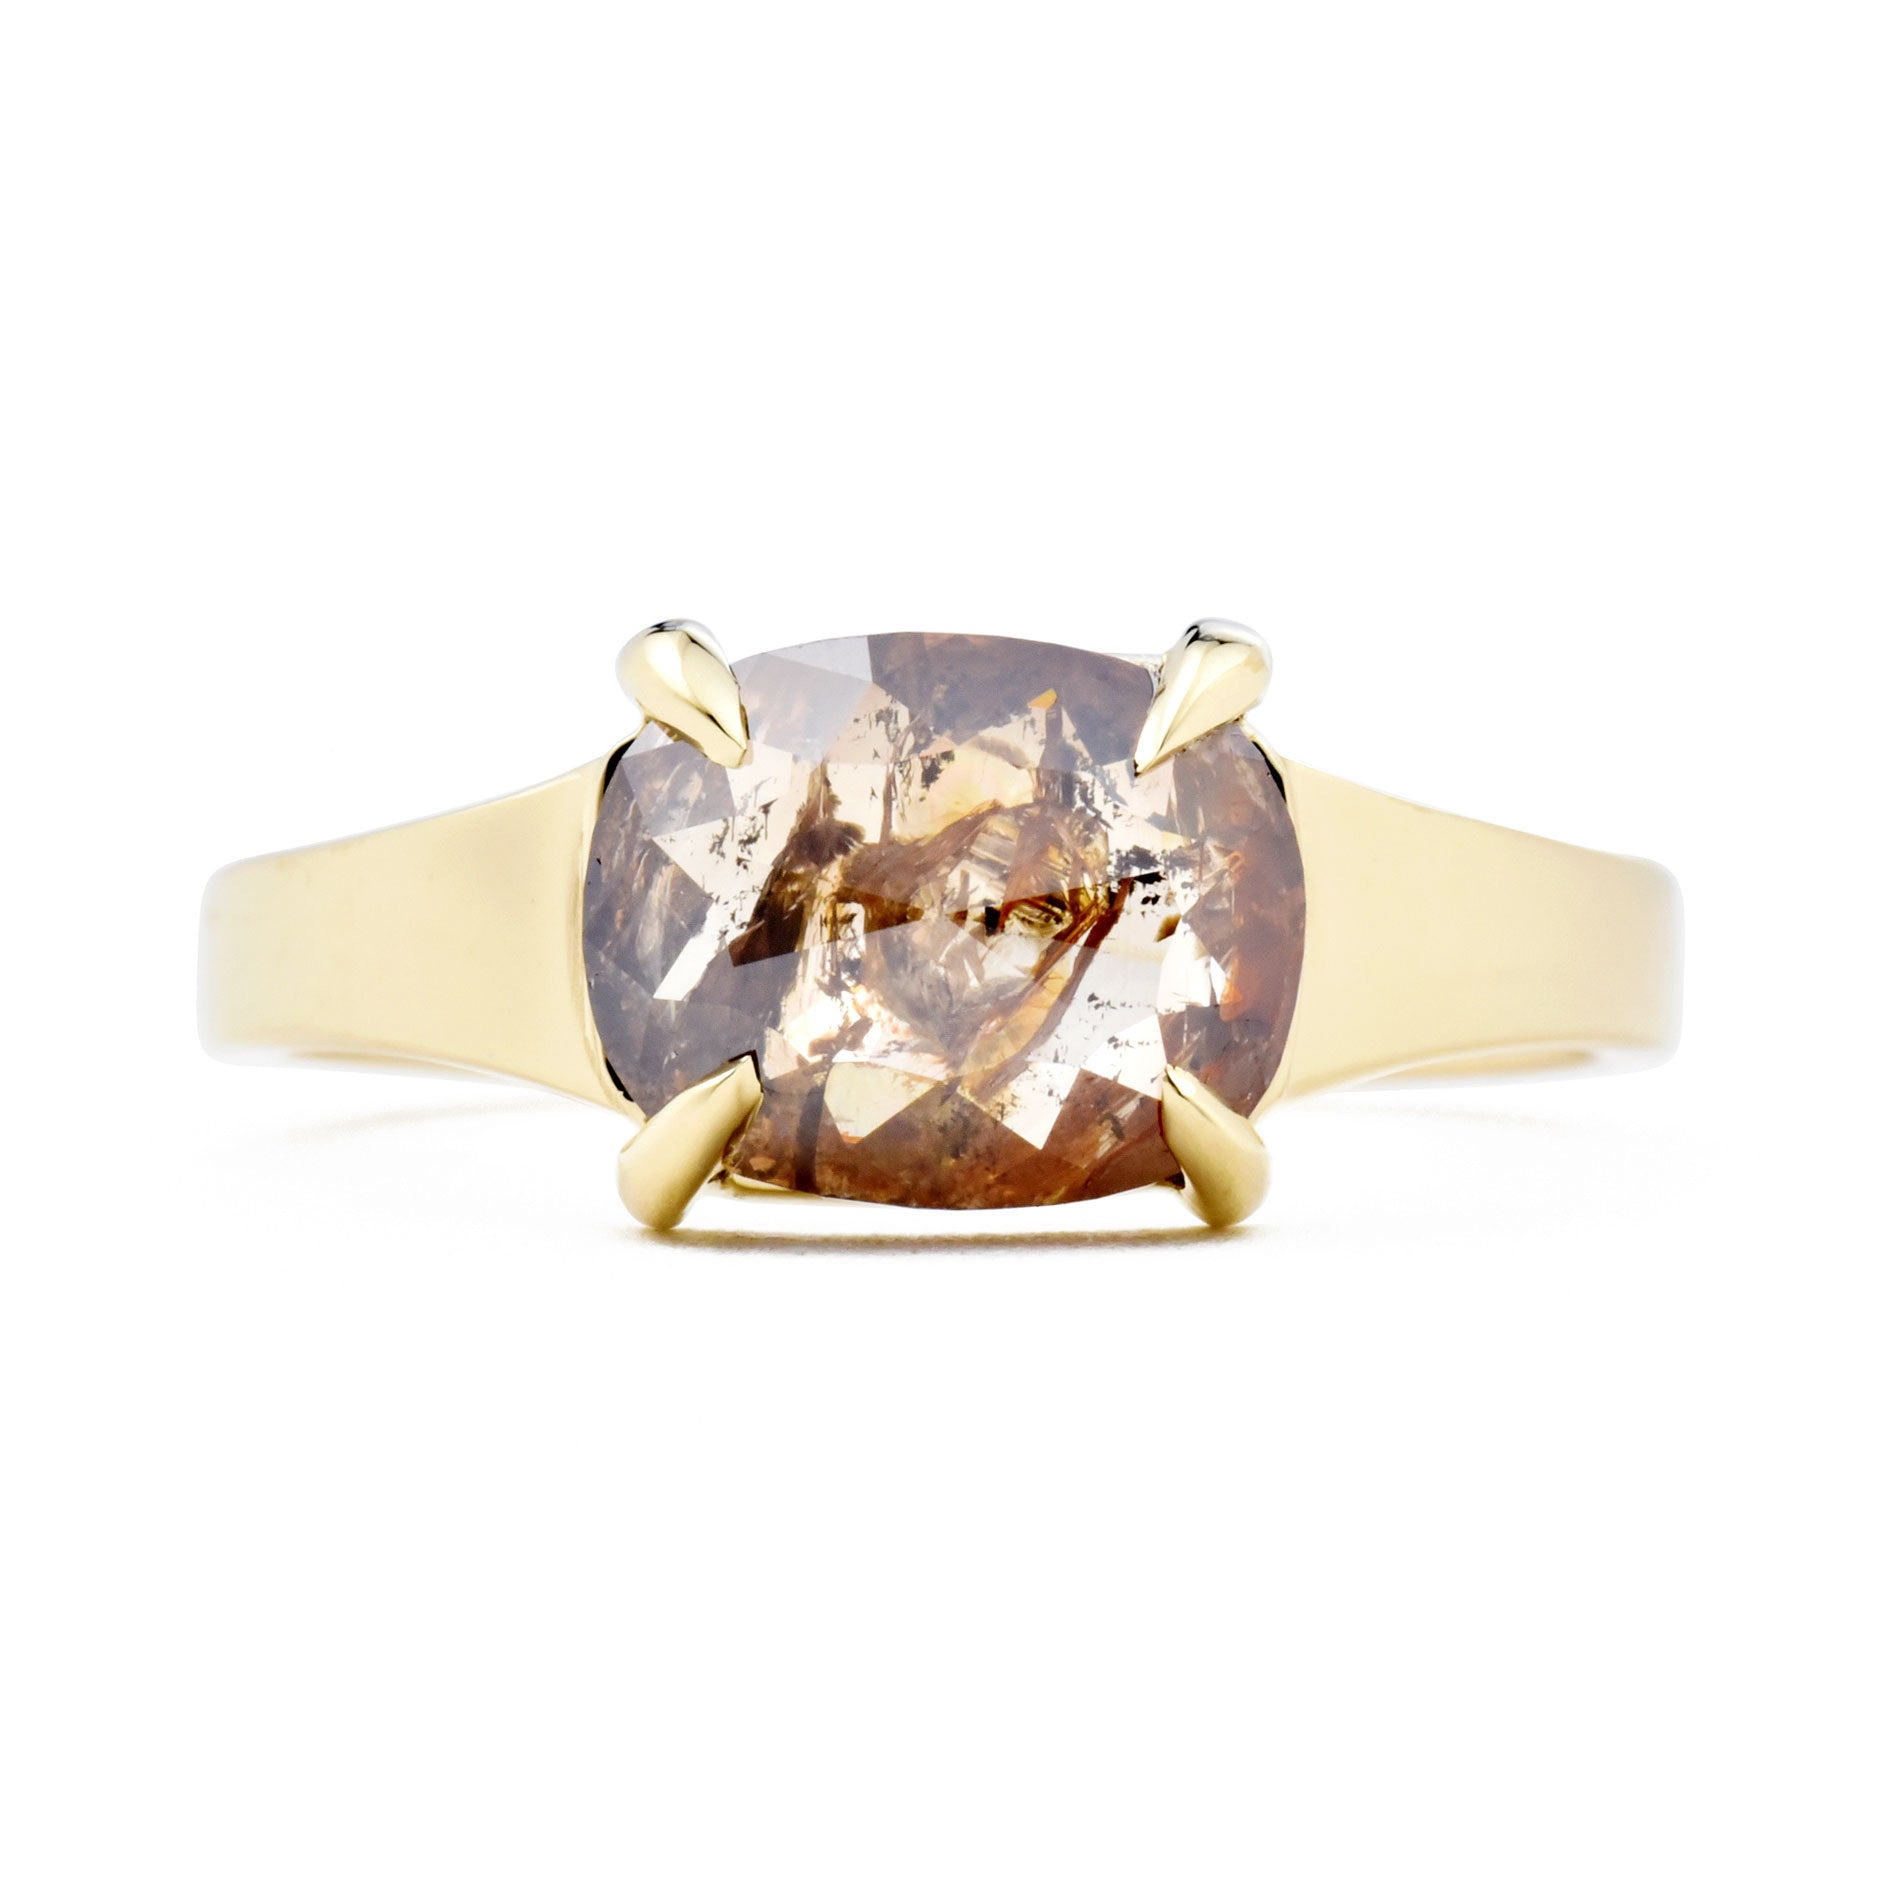 Astrid Reddish Brown Rose Cut Cushion Diamond Ring